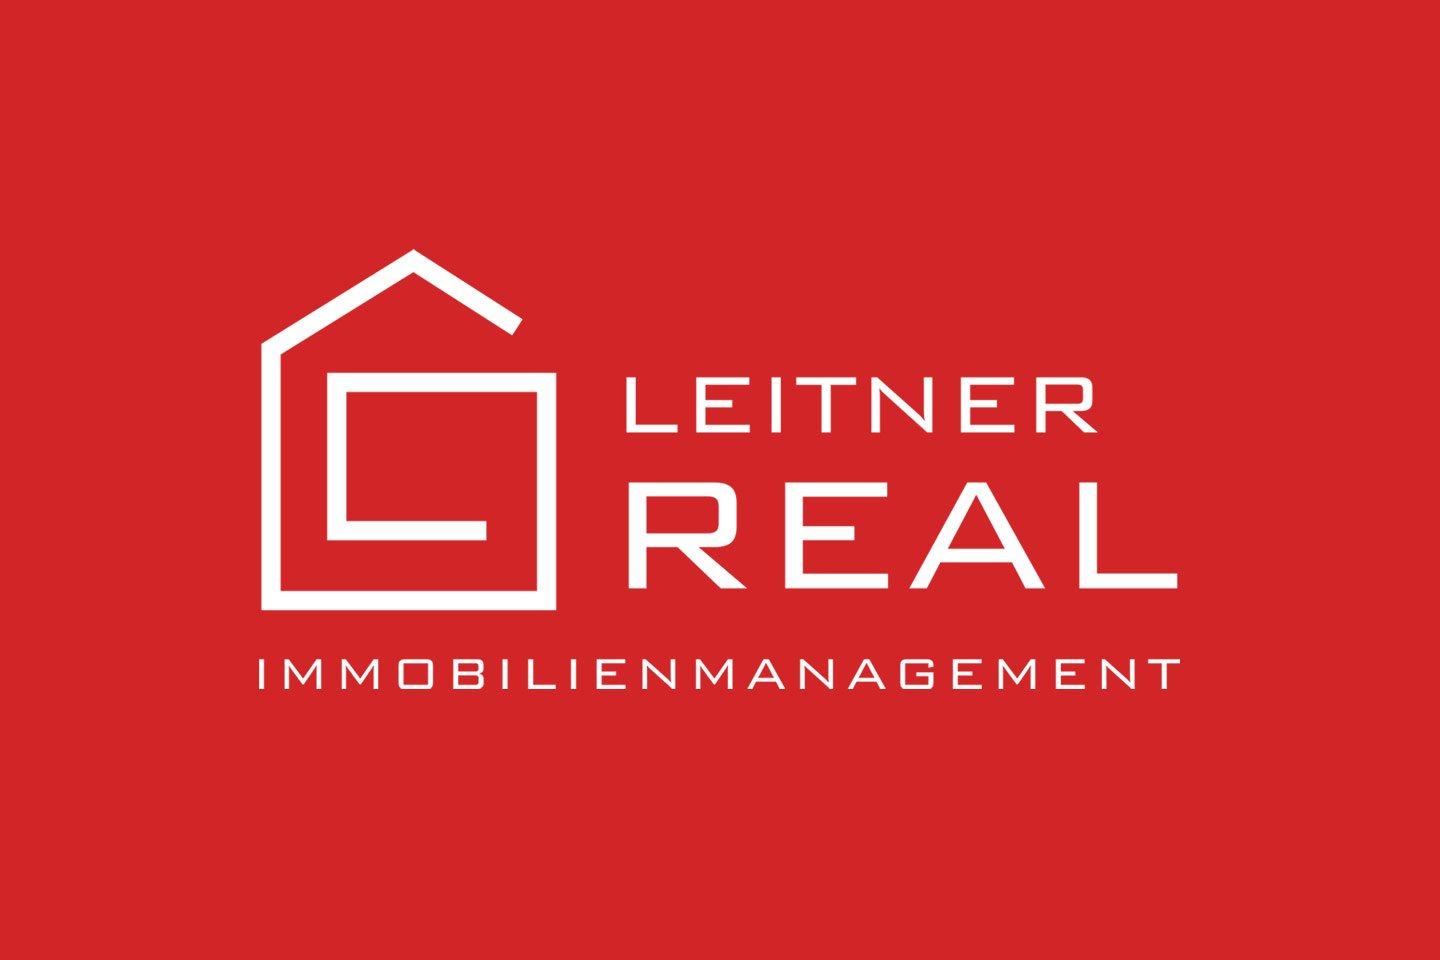 Leitner Real Logodesign